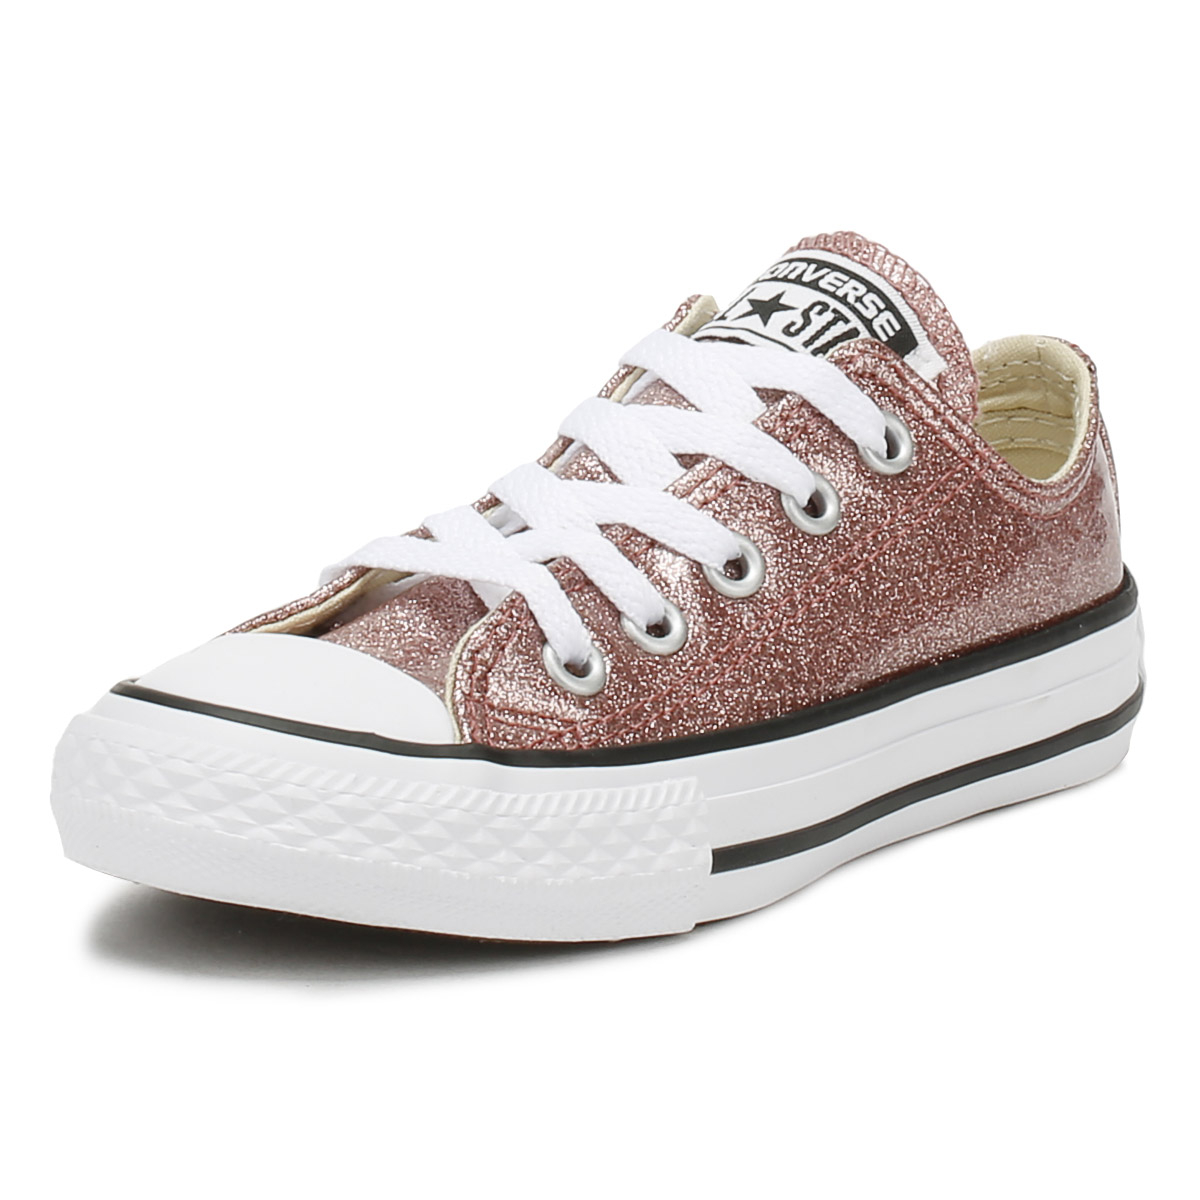 75ad24ae6a7399 Converse Chuck Taylor All Star Junior Trainers Rose Gold Lace Up Kids Shoes